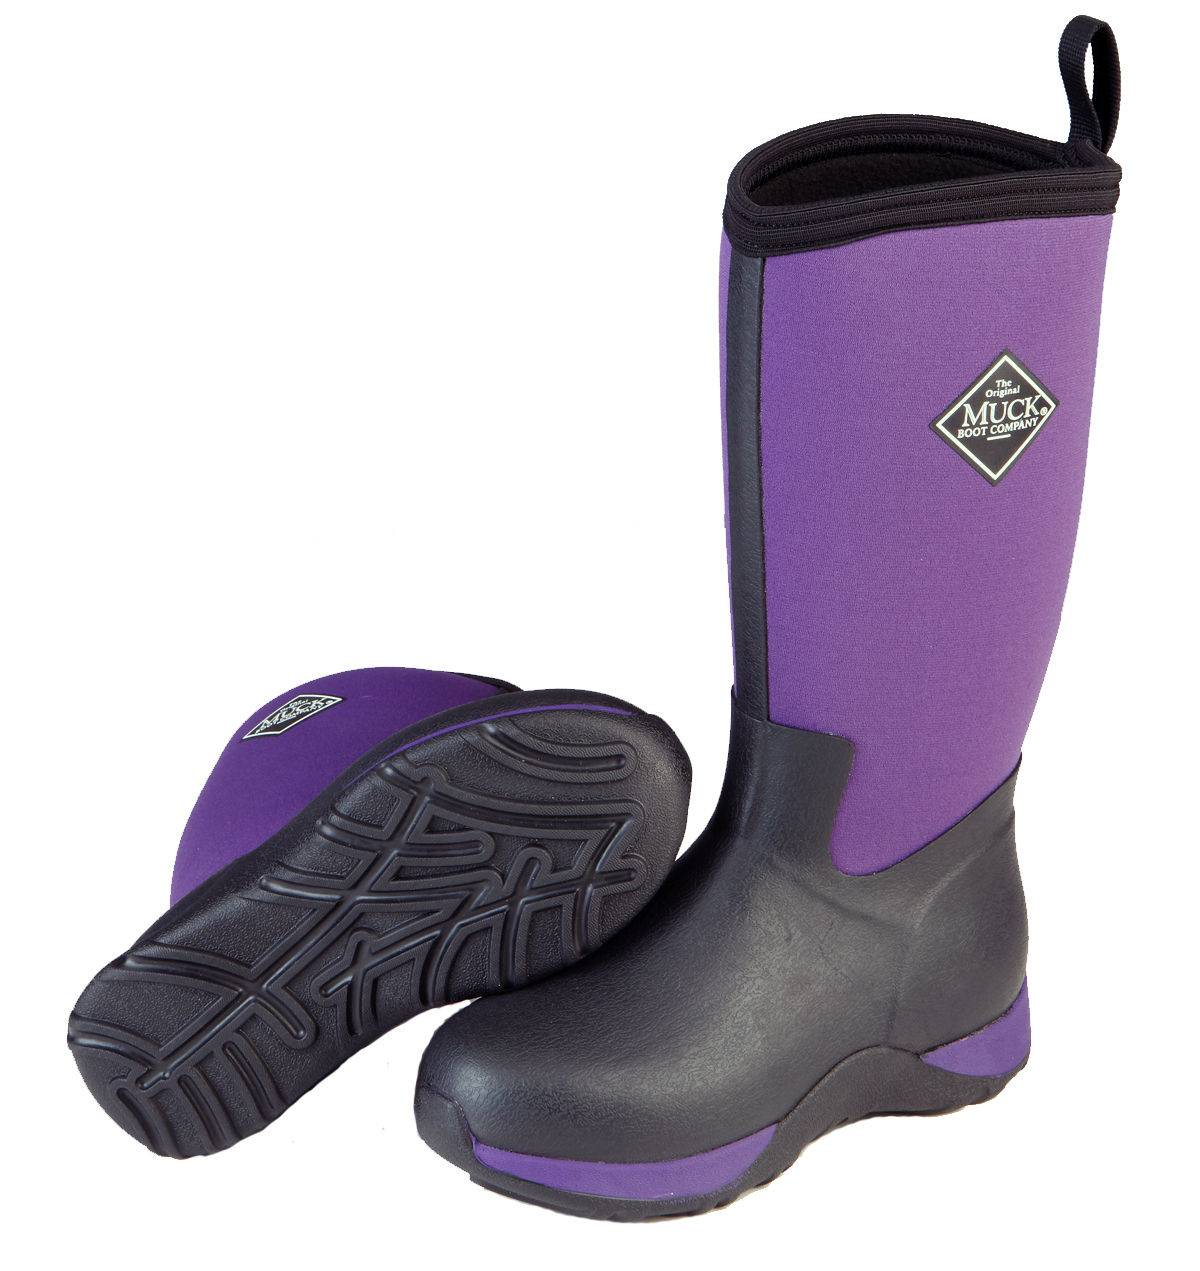 Muck Boots Arctic Adventure - Kids - Purple/Black